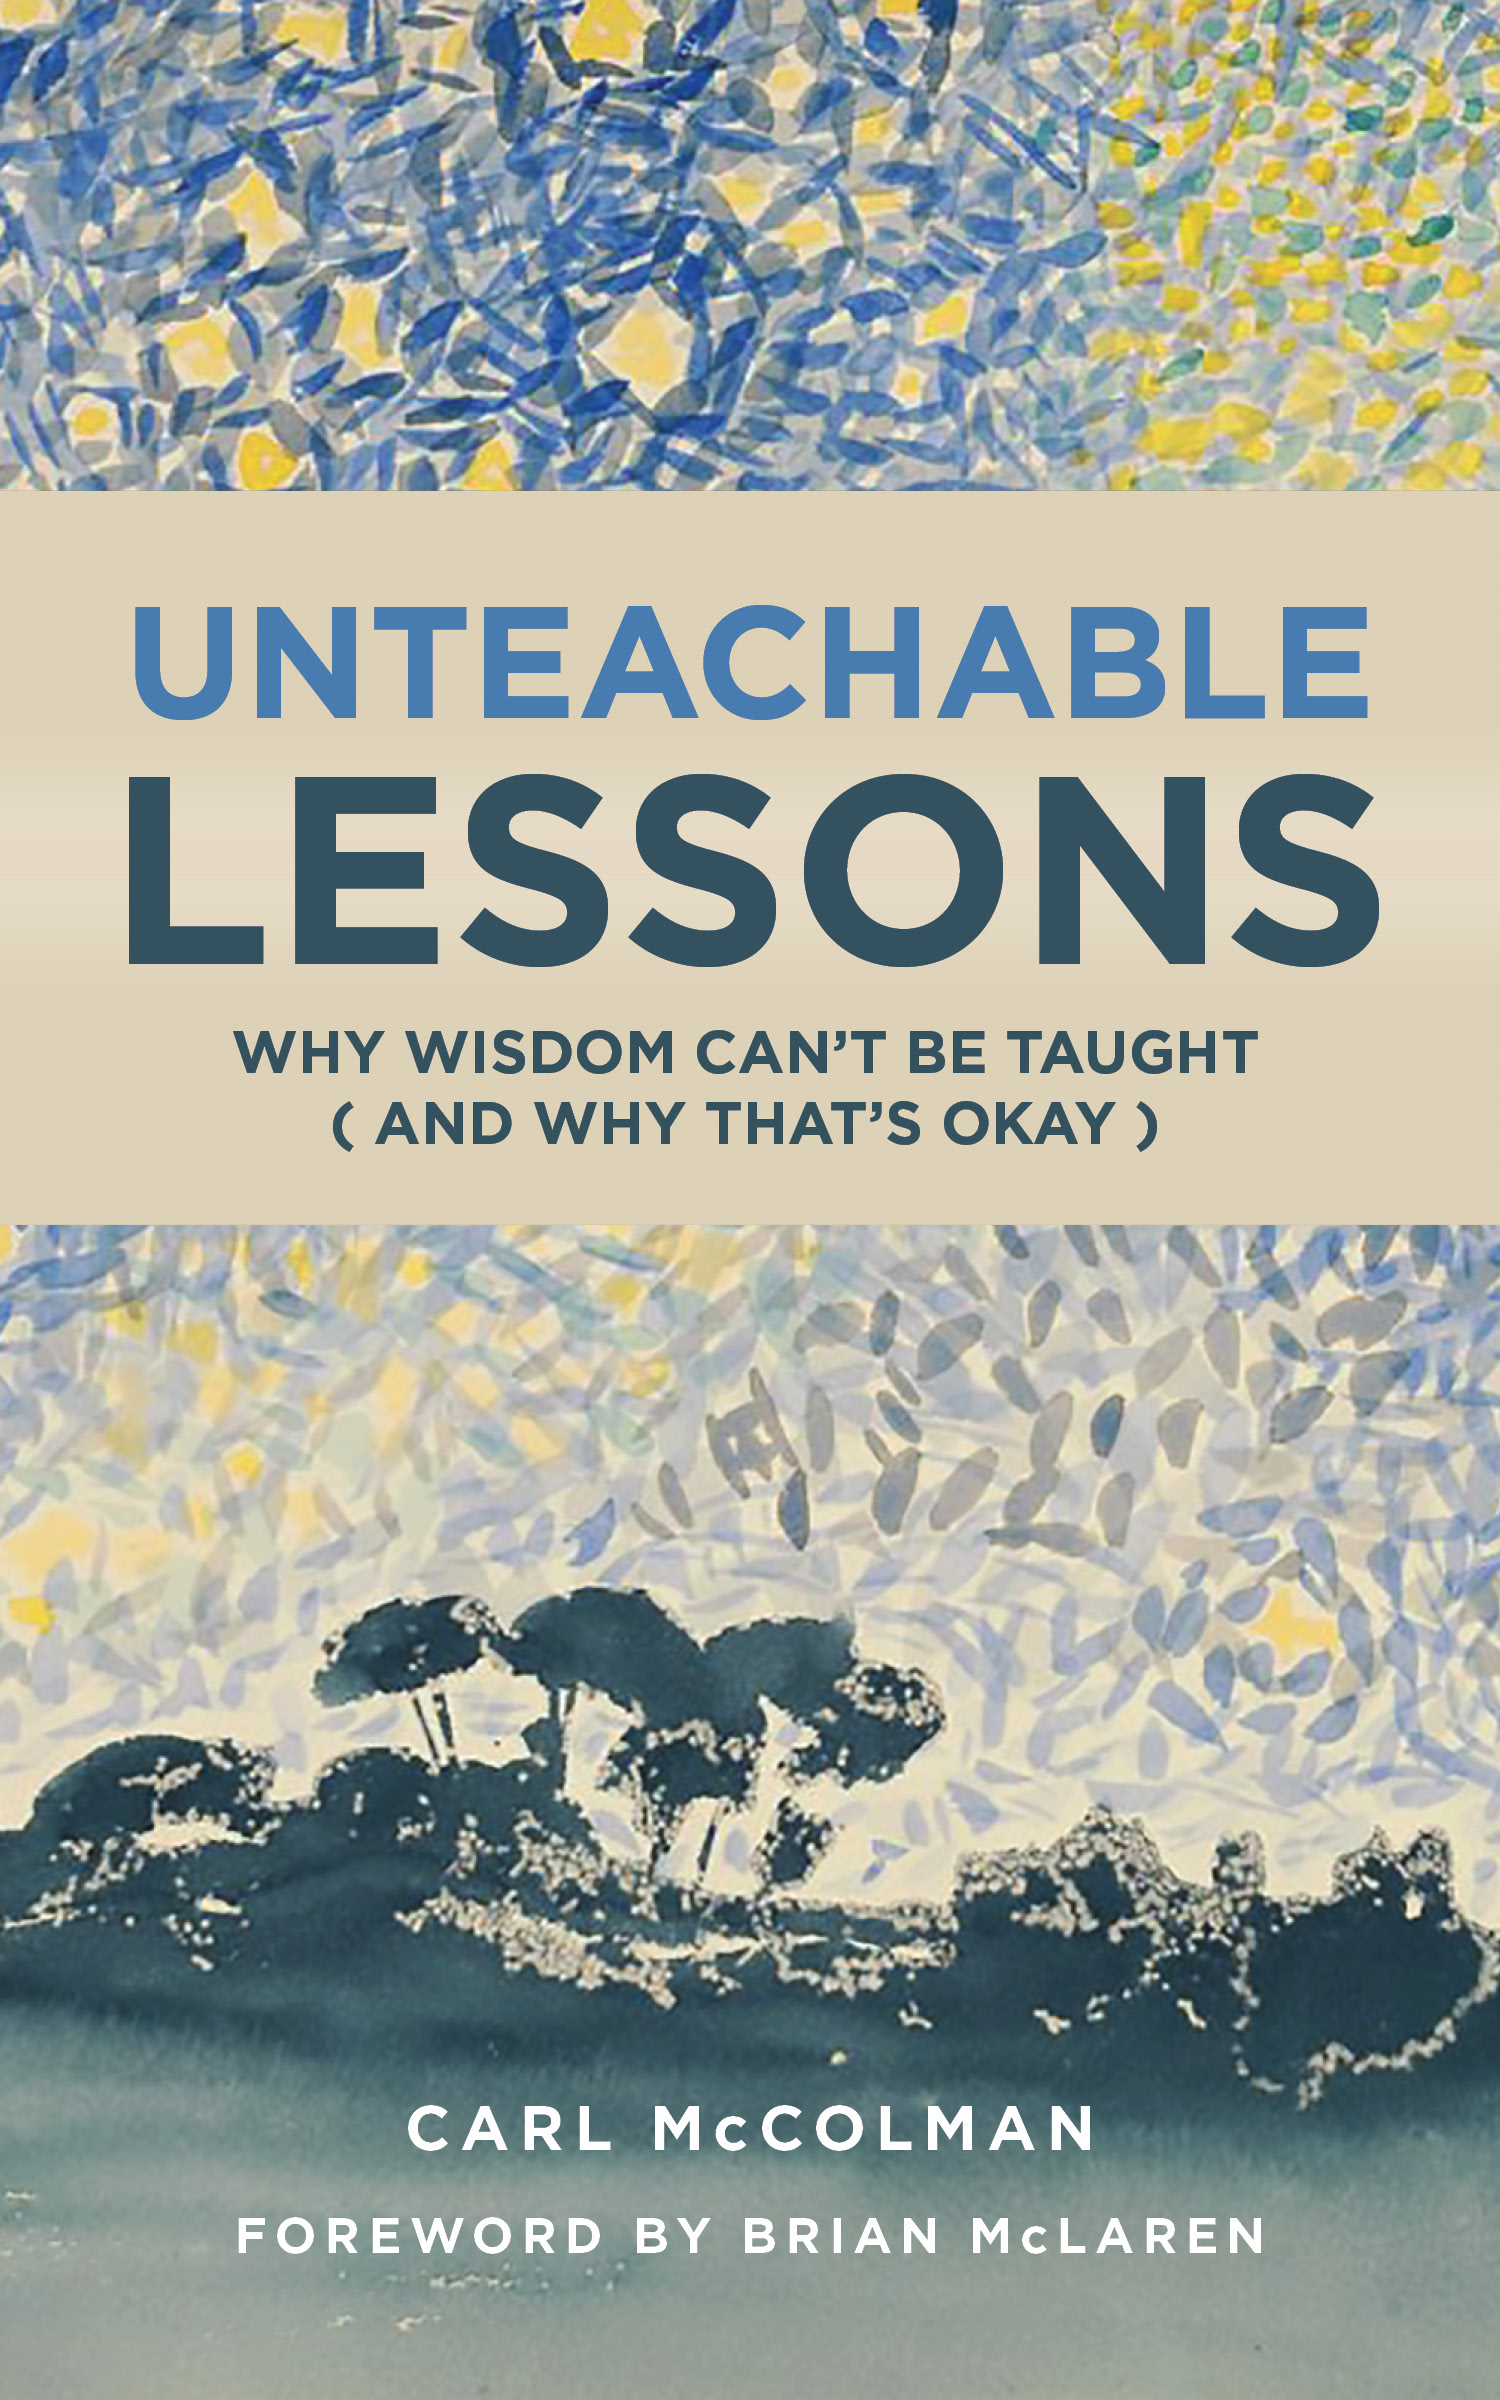 Unteachable Lessons